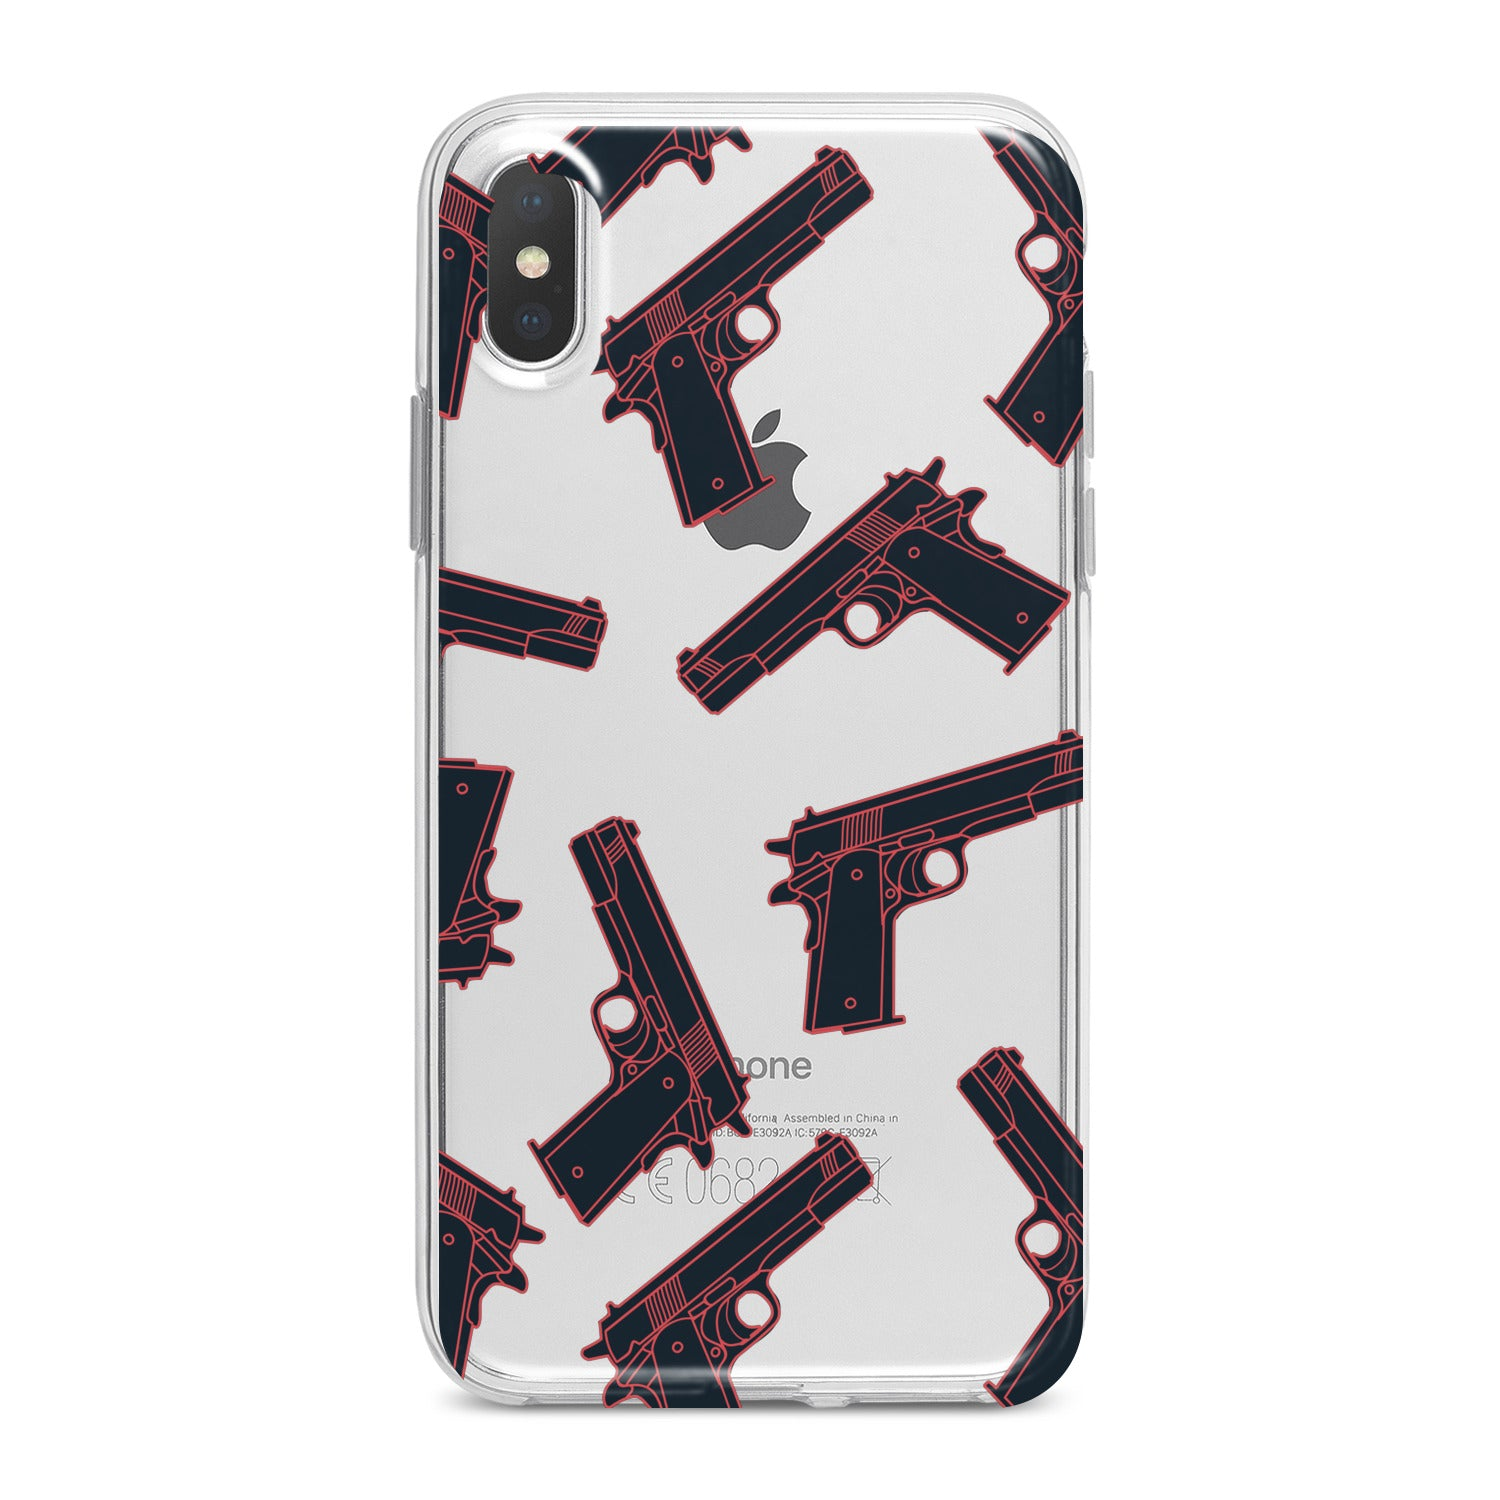 Lex Altern Gun Pattern Phone Case for your iPhone & Android phone.